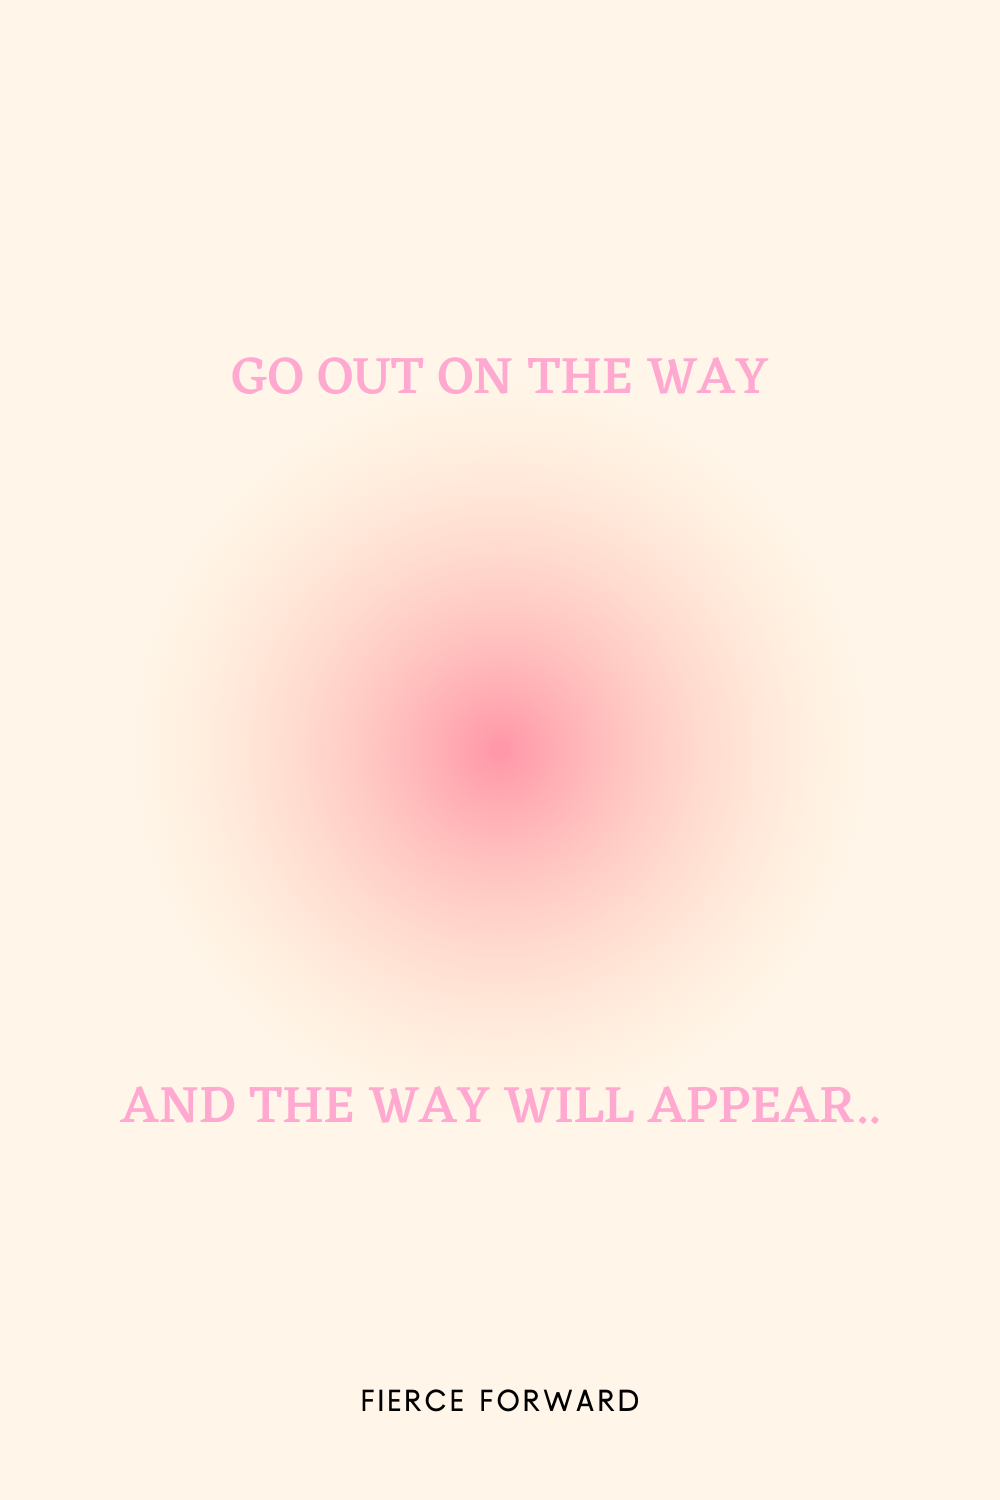 go out on the way and the way appears quote